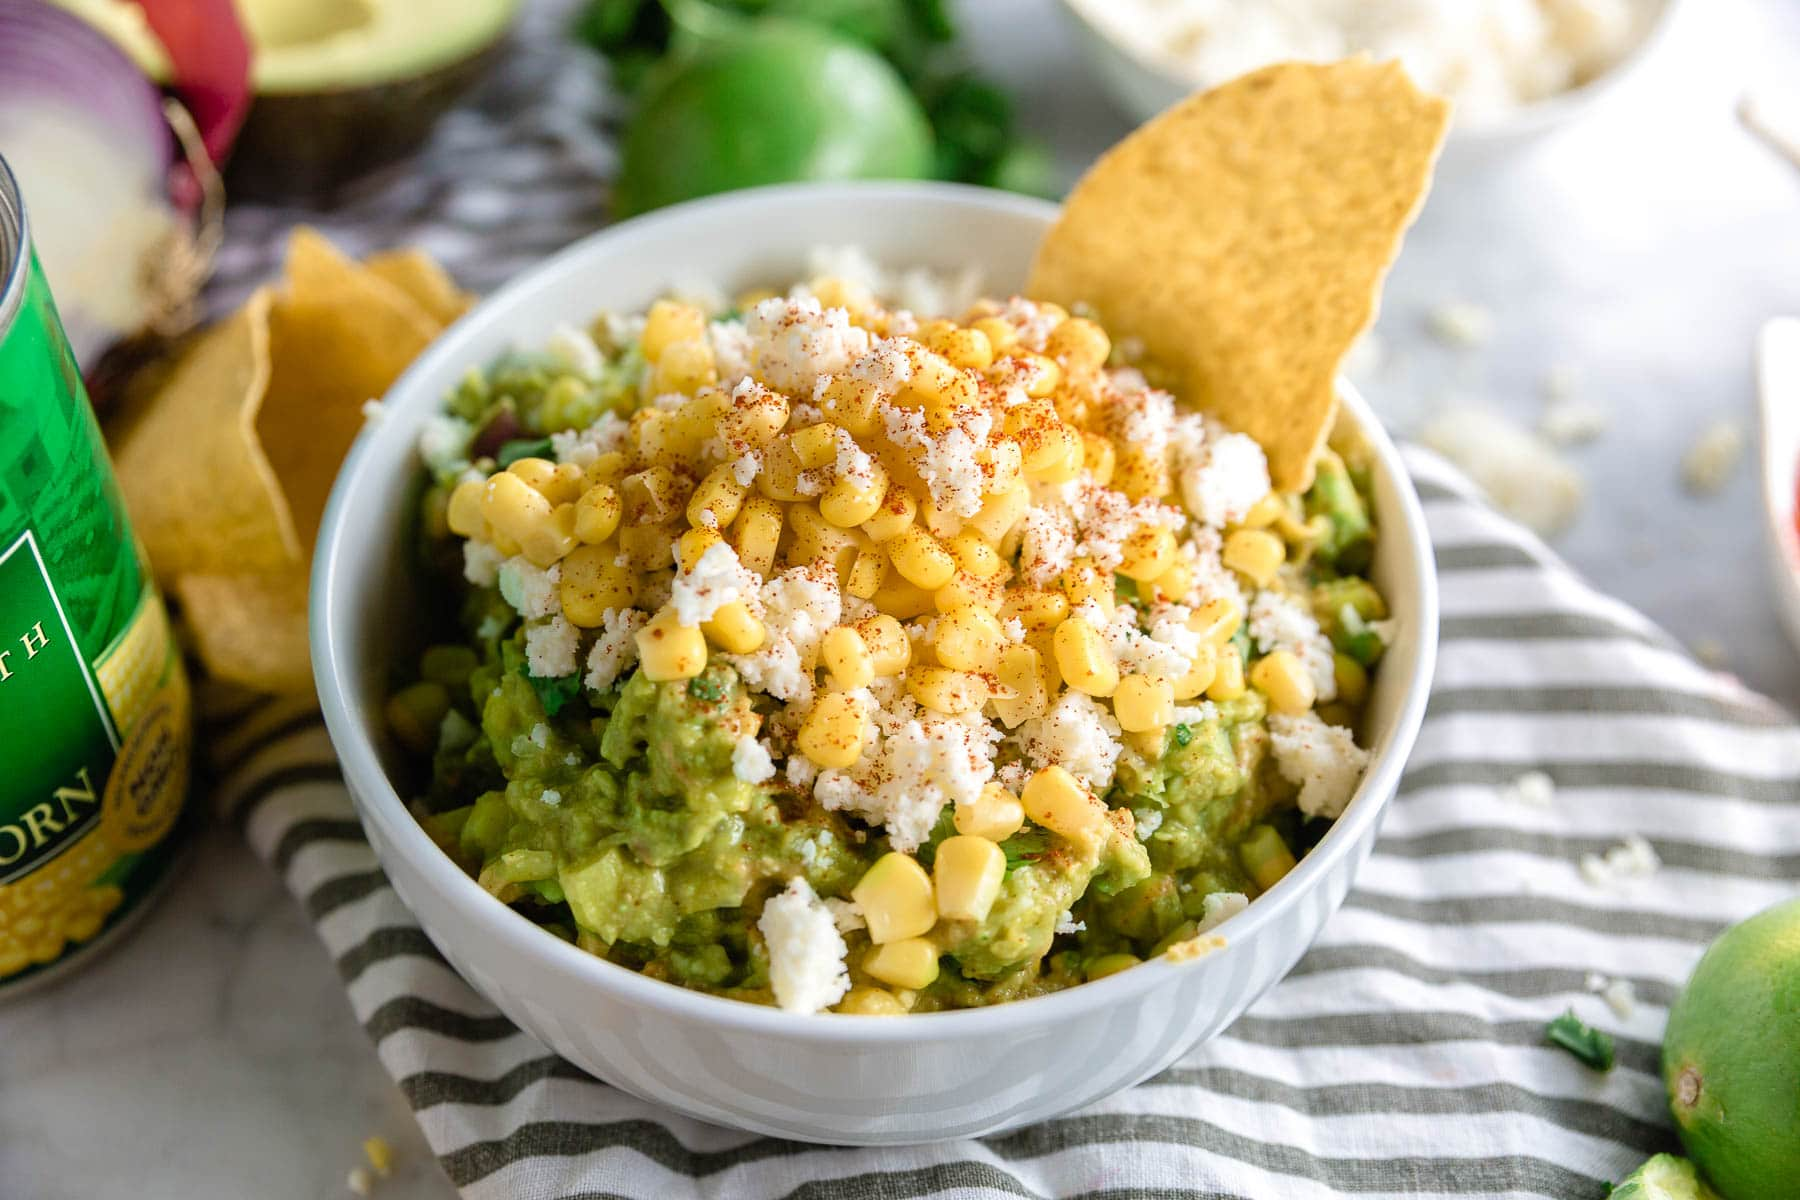 A bowl of corn and cotija cheese guacamole with a tortilla chip and a dusting of paprika on top.